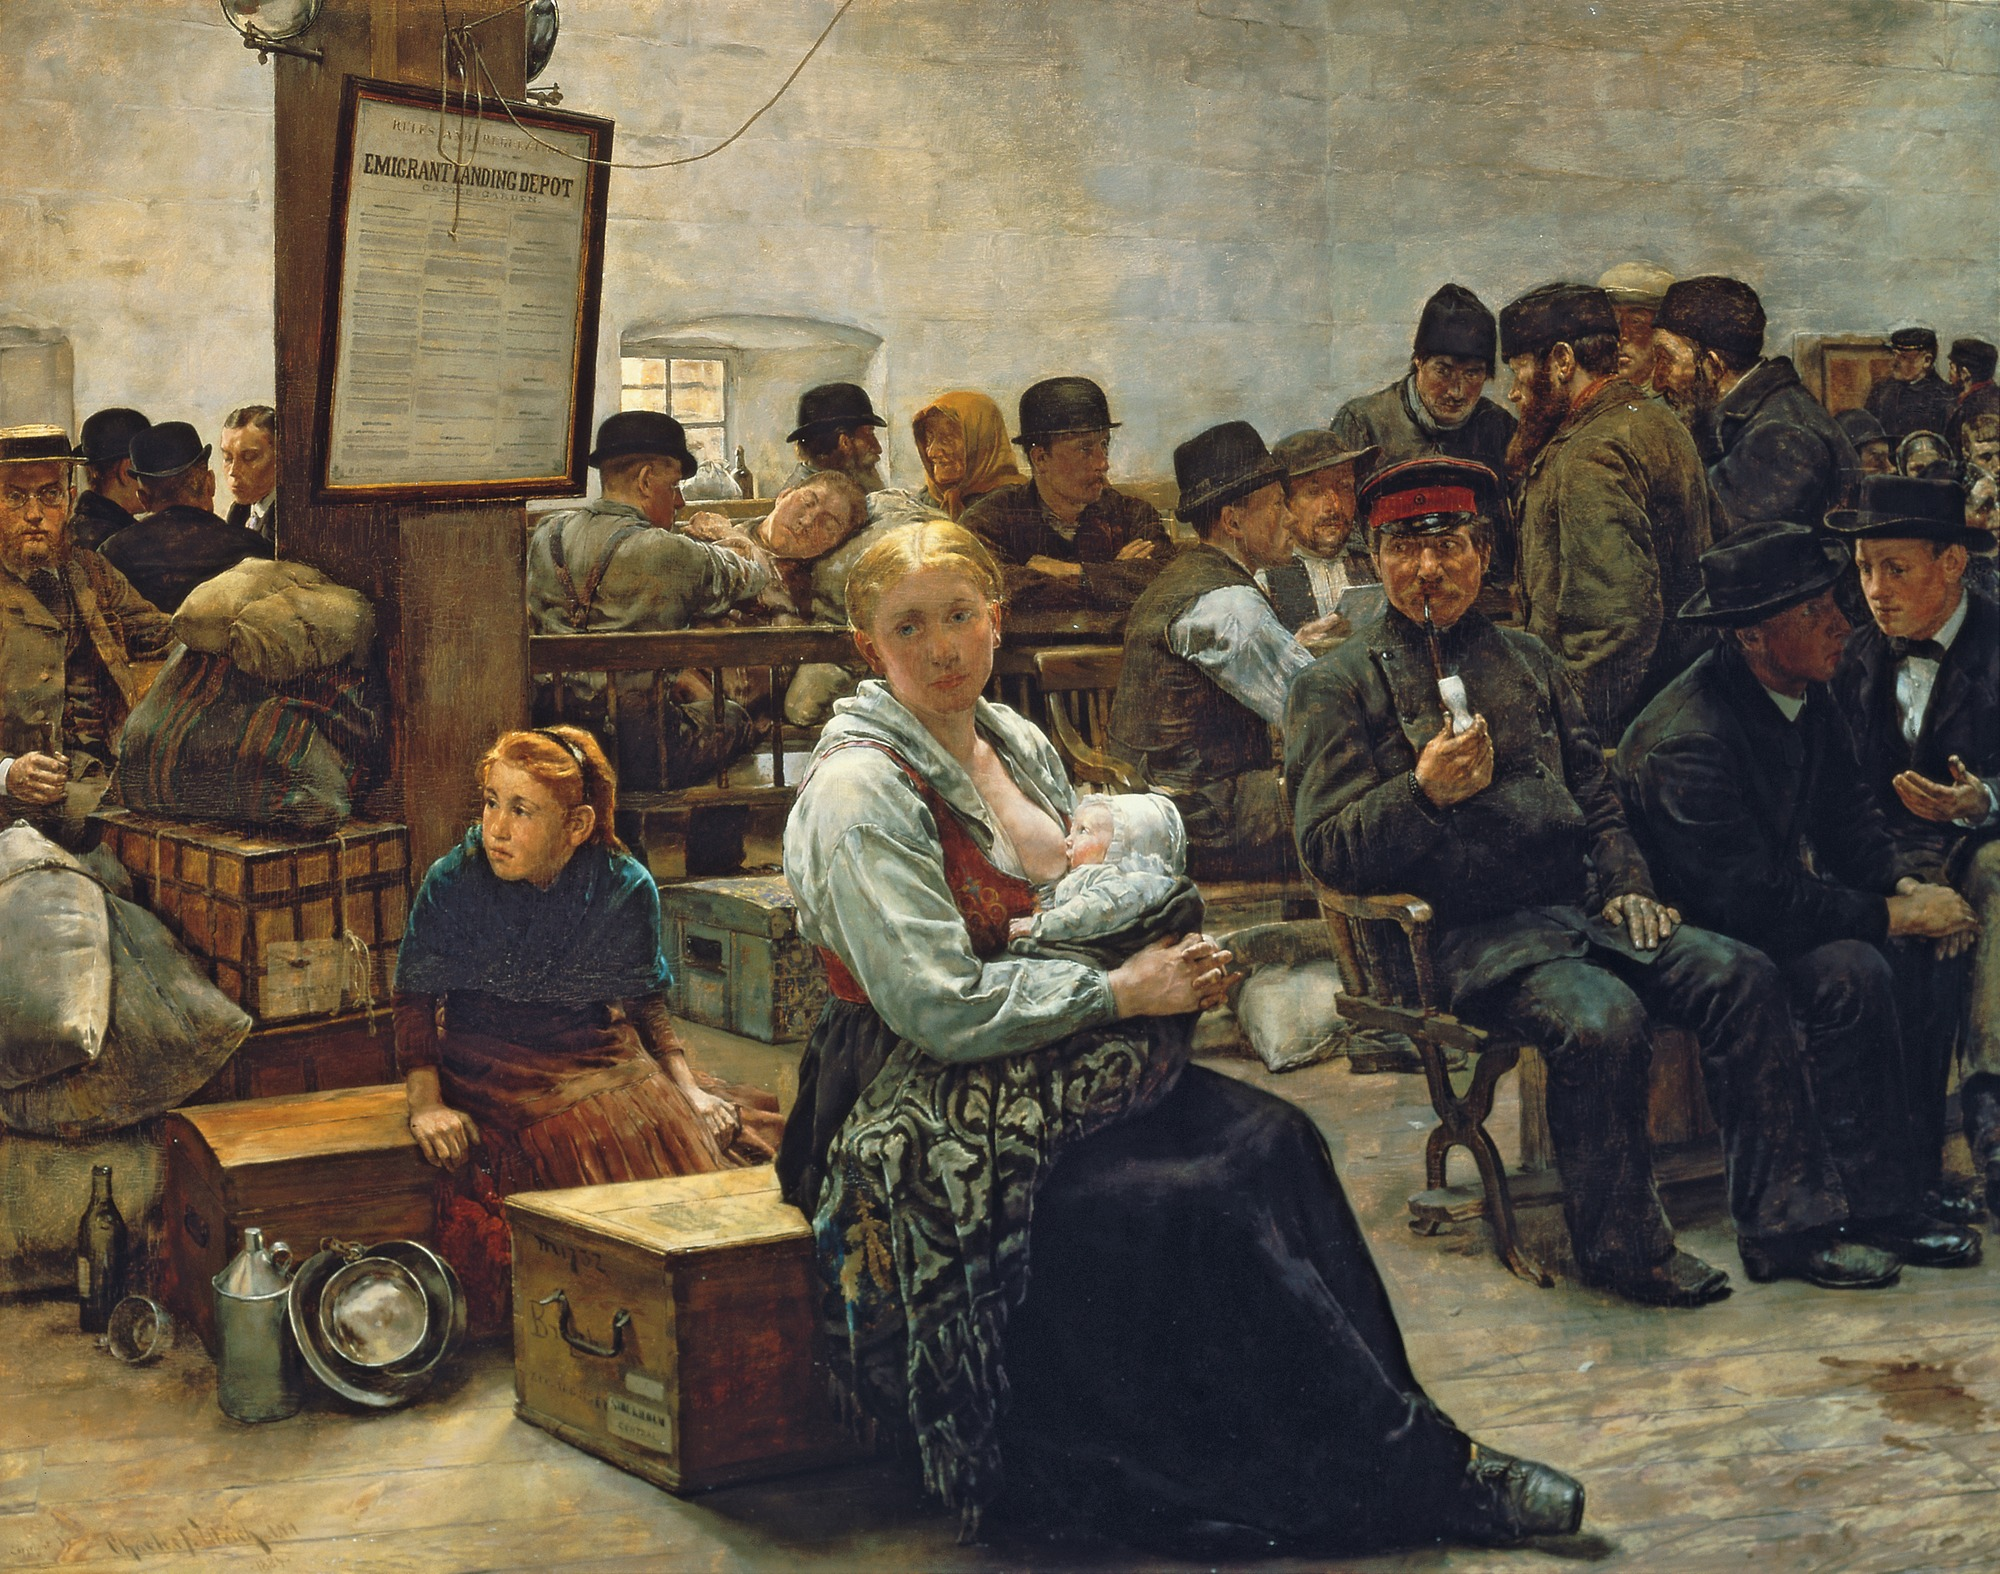 (oil on panel) by (1858-1908); 71.6x91.4 cm; Corcoran Gallery of Art, Washington D.C., USA; REPRODUCTION PERMISSION REQUIRED; American, out of copyright PLEASE NOTE: The Bridgeman Art Library works with the owner of this image to clear permission. If you wish to reproduce this image, please inform us so we can clear permission for you.